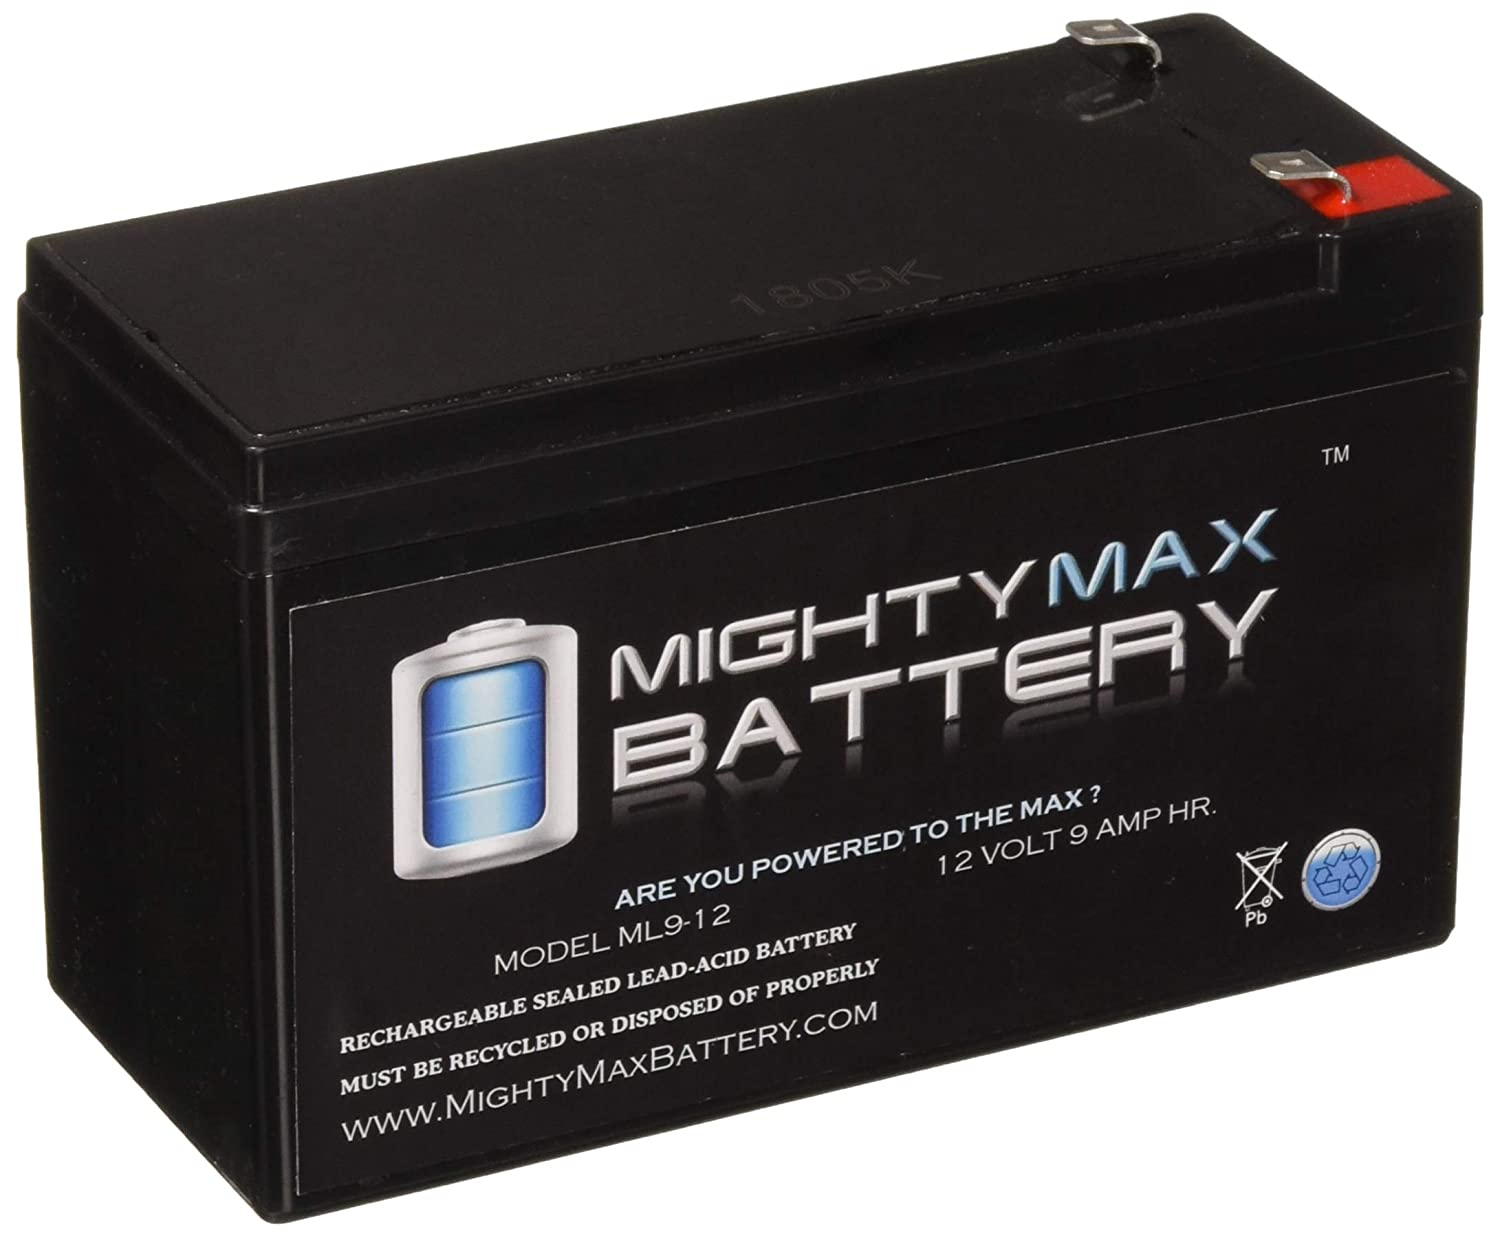 ML9-12 - 12 V 9 Ah Rechargeable SLA Battery - Mighty Max Battery Brand Product